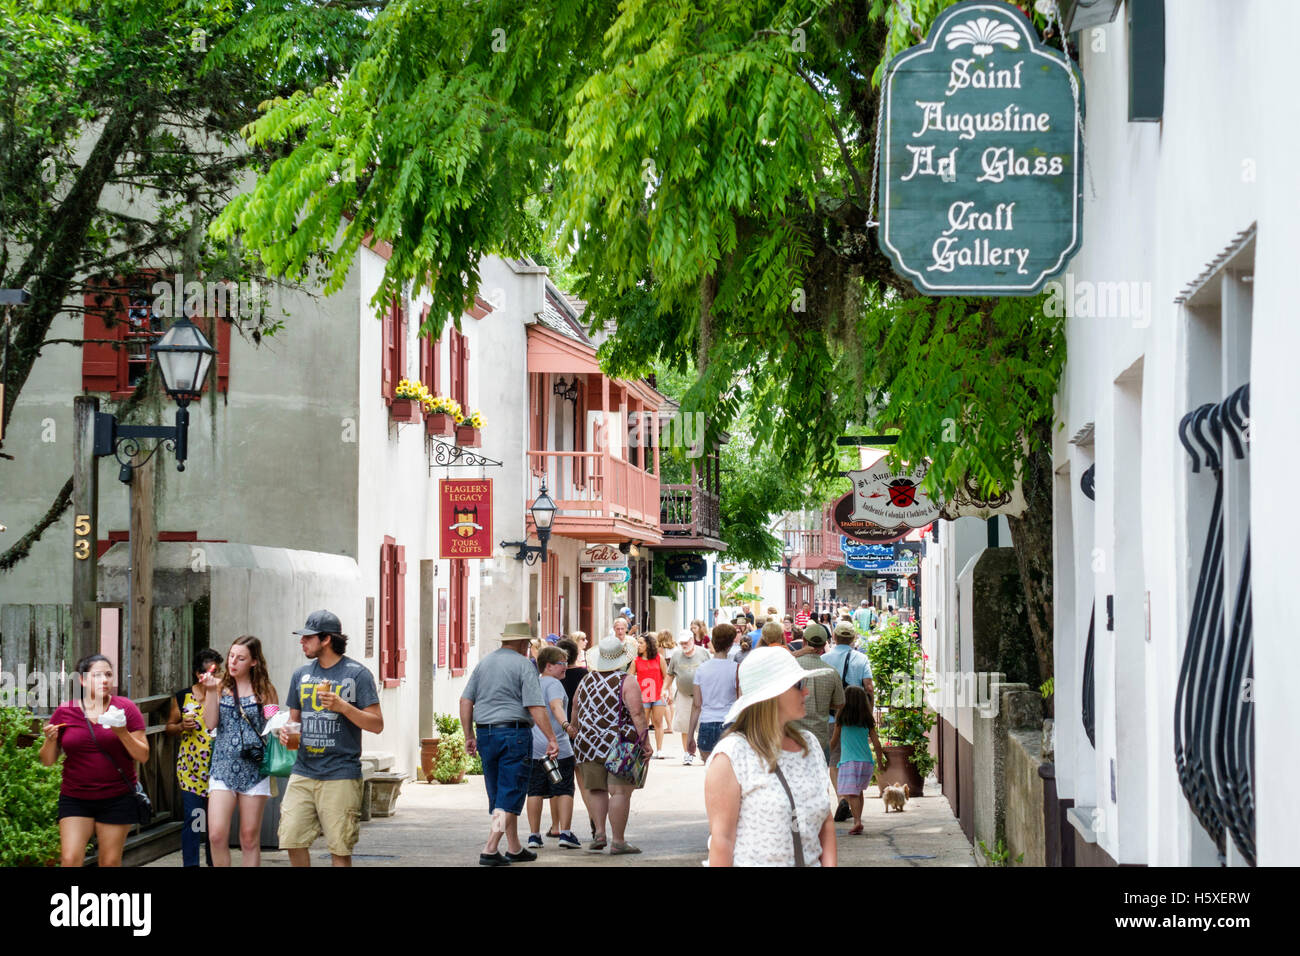 942ed16c0 St Augustine Shopping Street Stock Photos   St Augustine Shopping ...